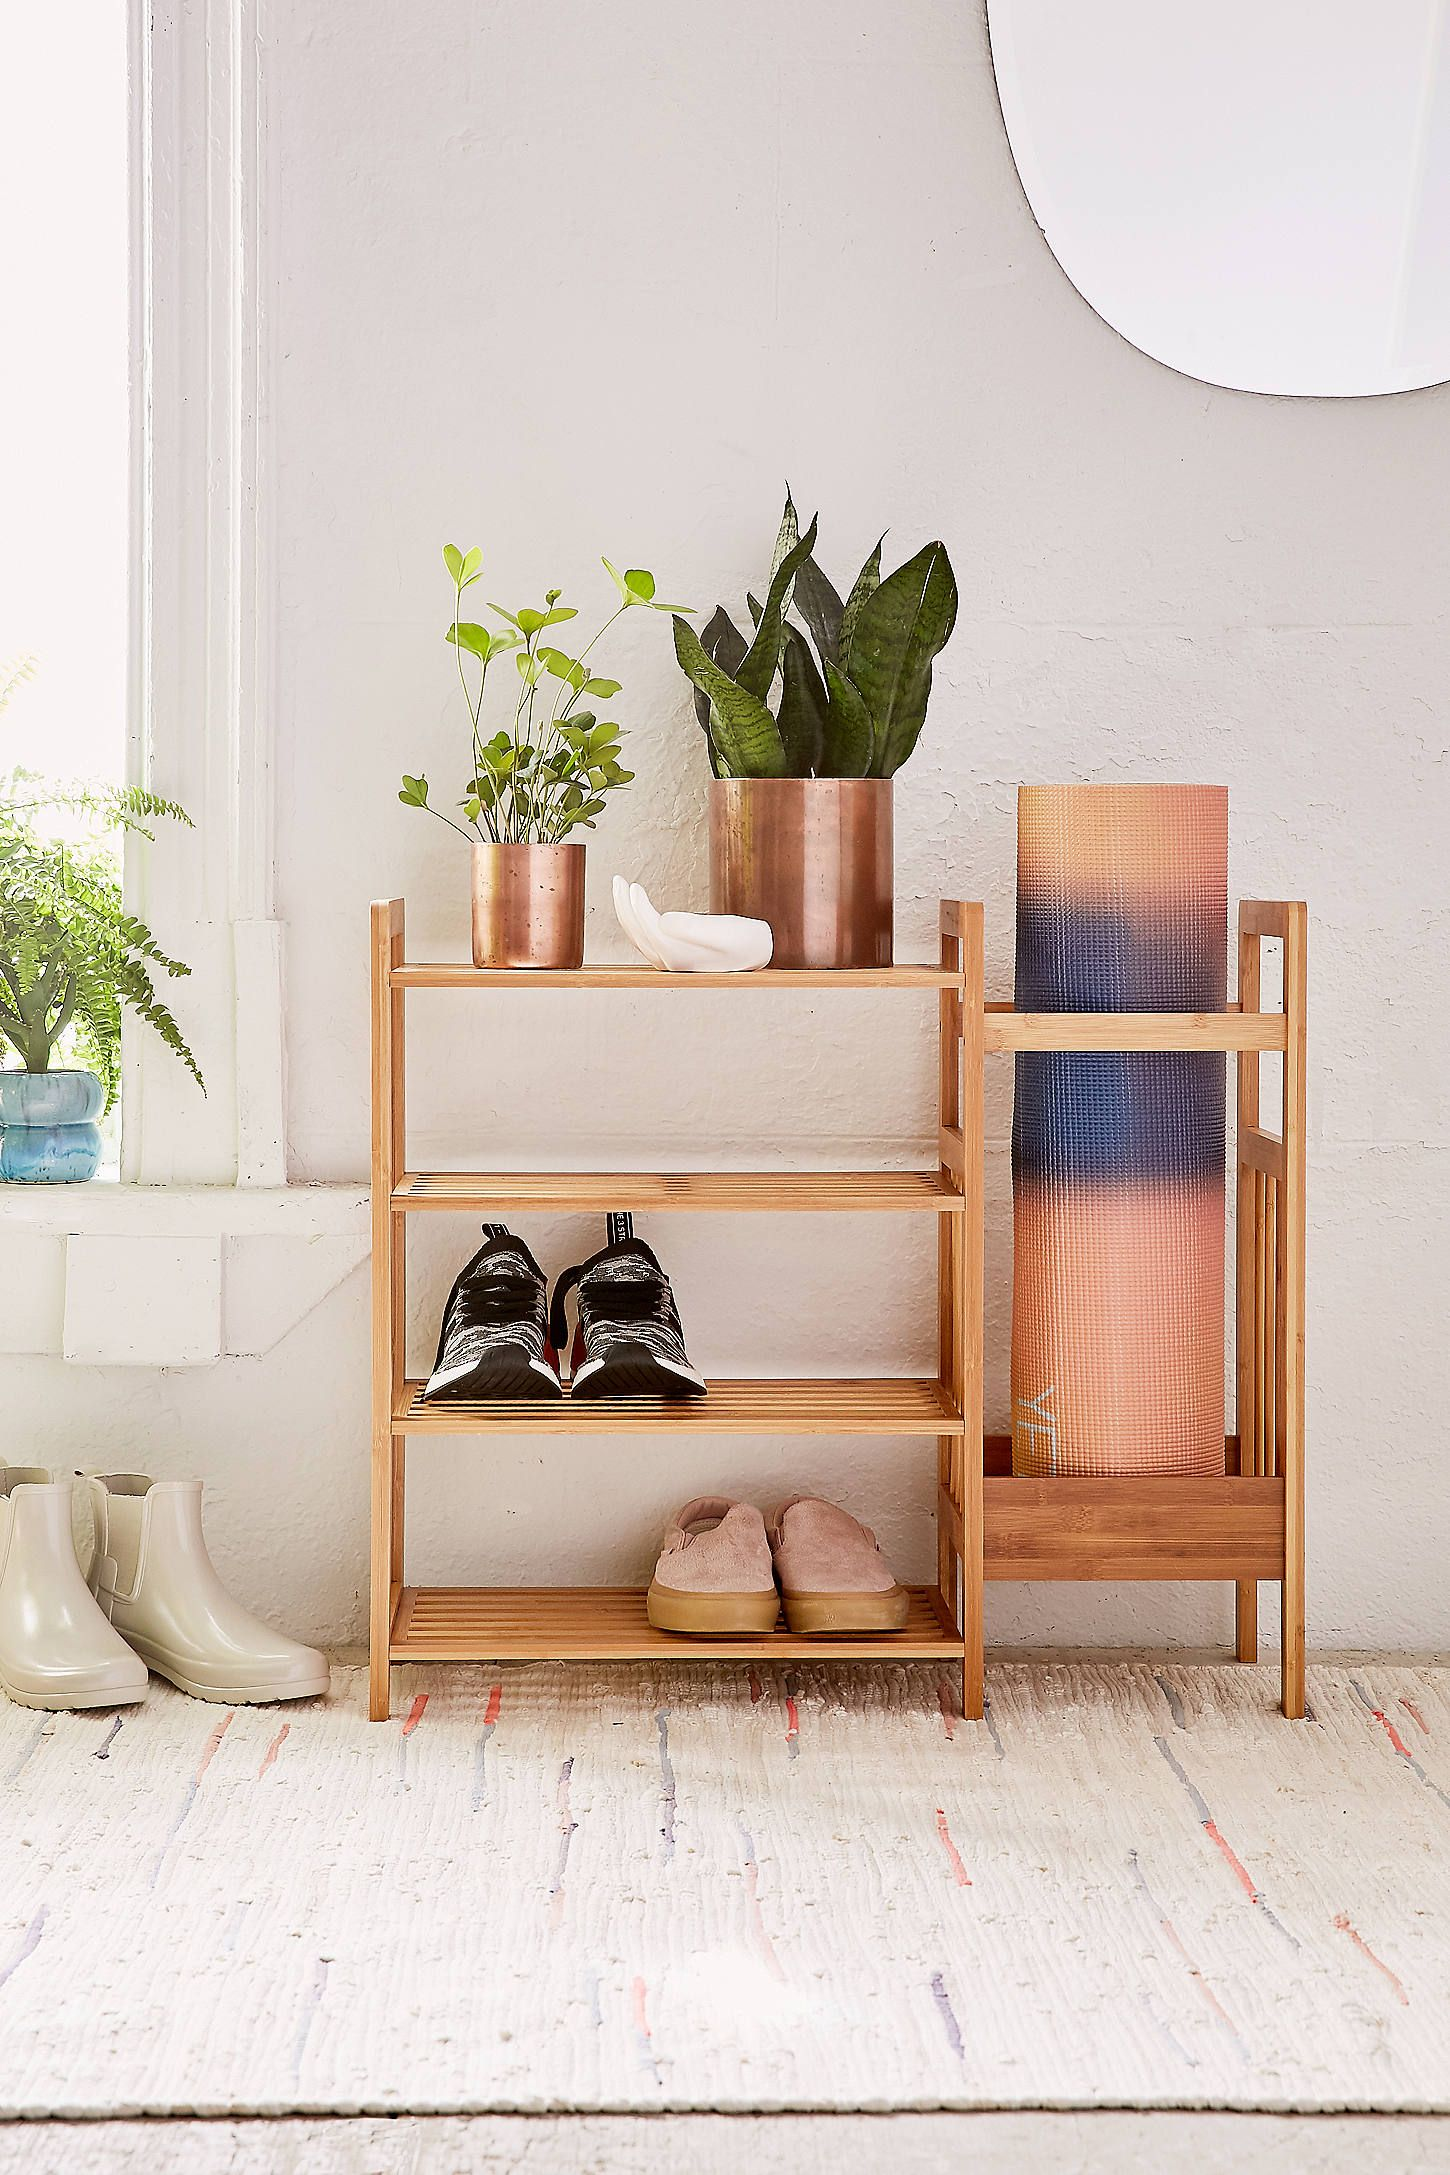 Mobilier Petit Espace Best Of Bamboo Entryway Shelf organiser Of 21 Luxe Mobilier Petit Espace